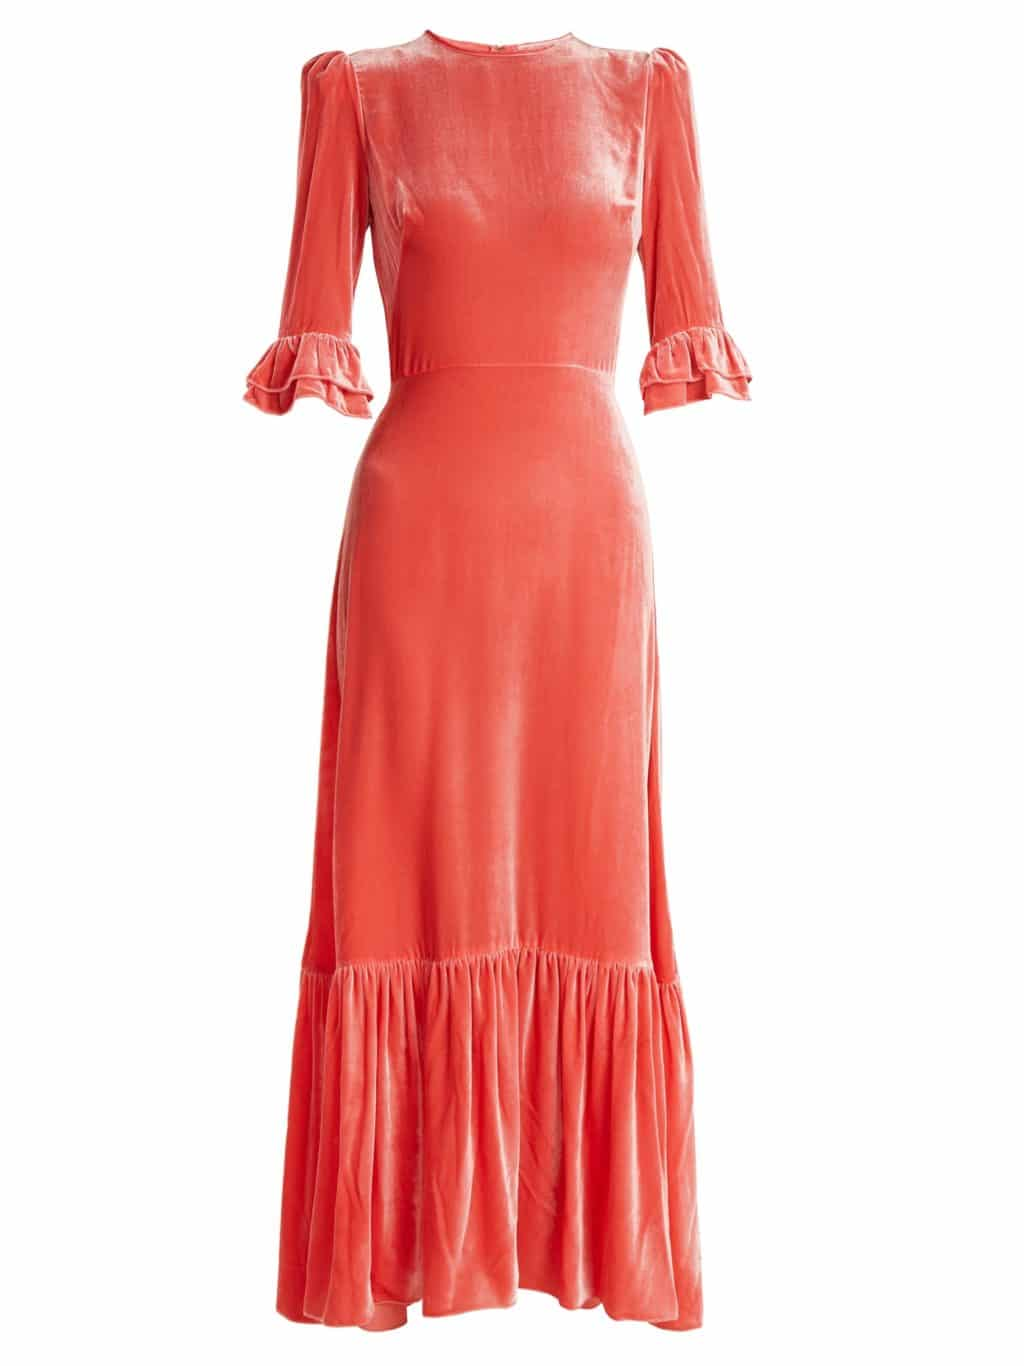 THE VAMPIRE'S WIFE Festival Ruffled Velvet Coral Pink Dress